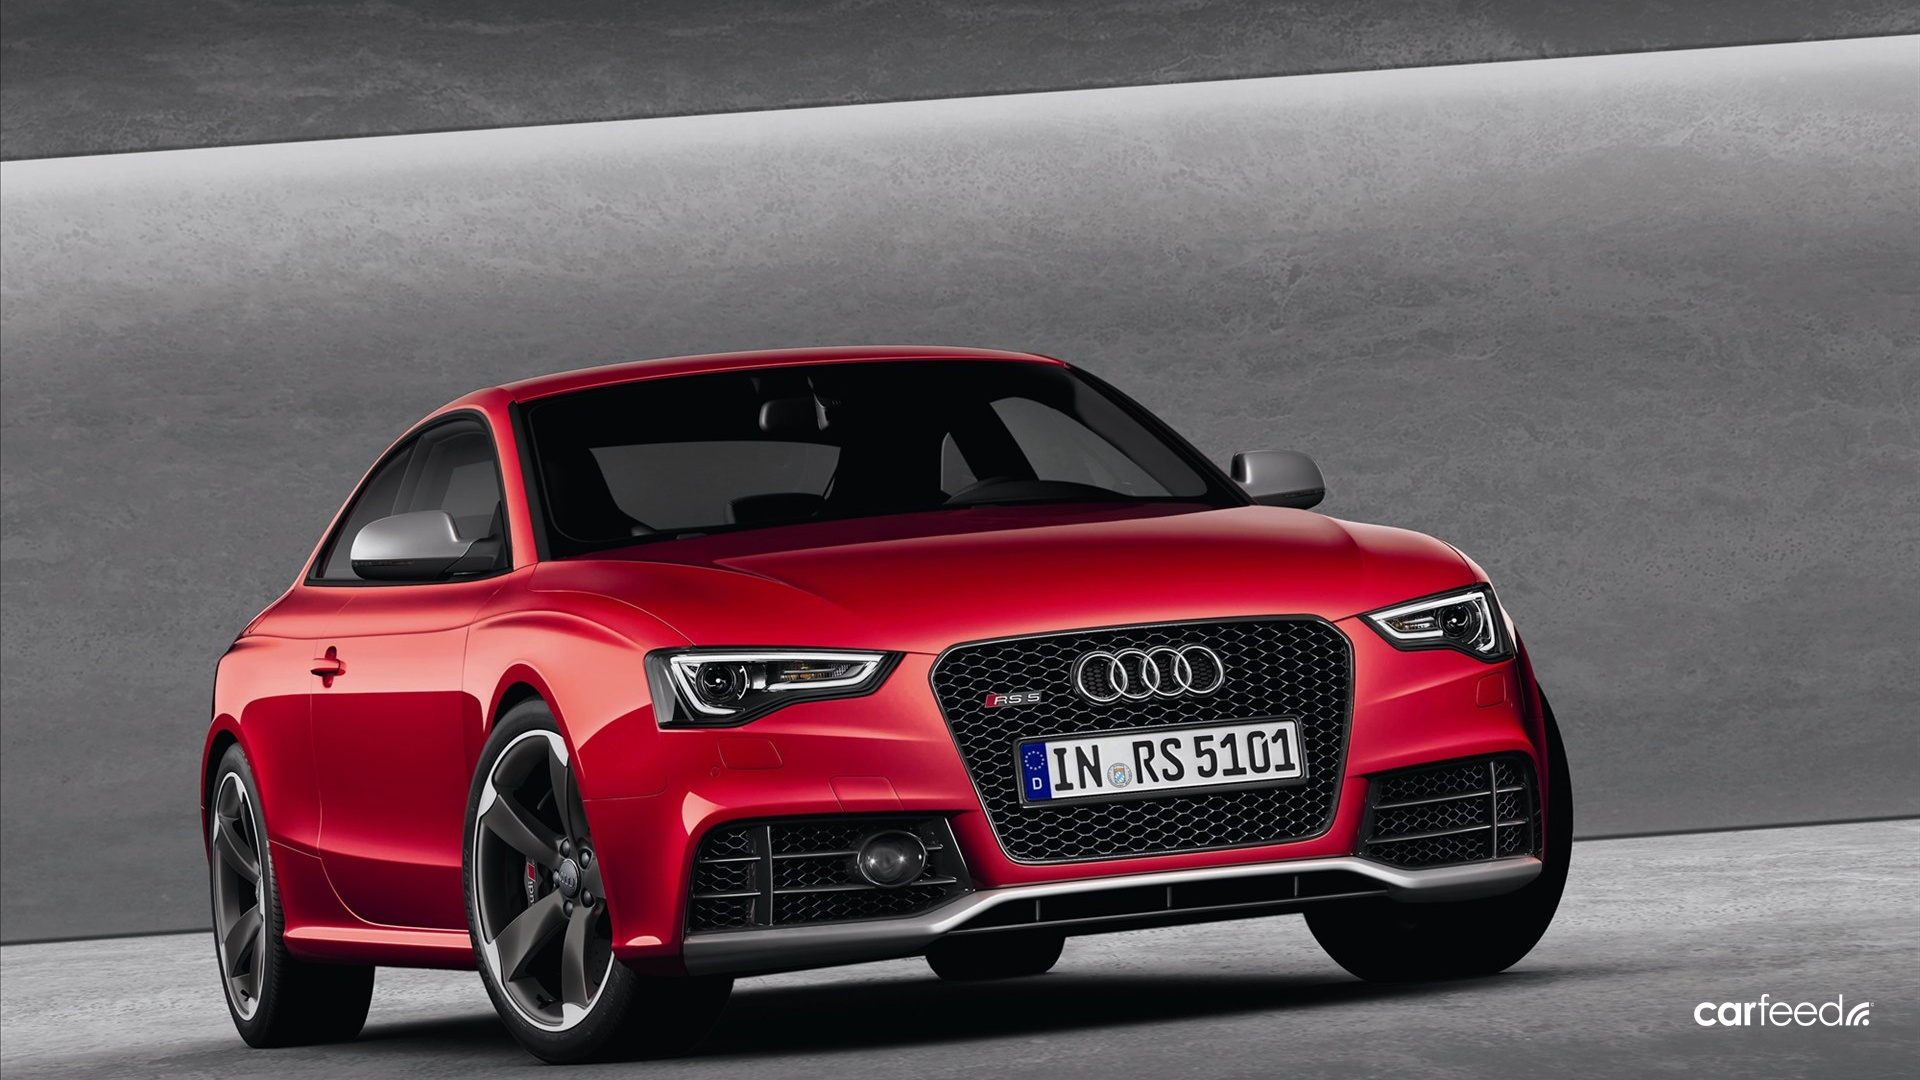 2012 Audi RS5  front view HD Wallpaper